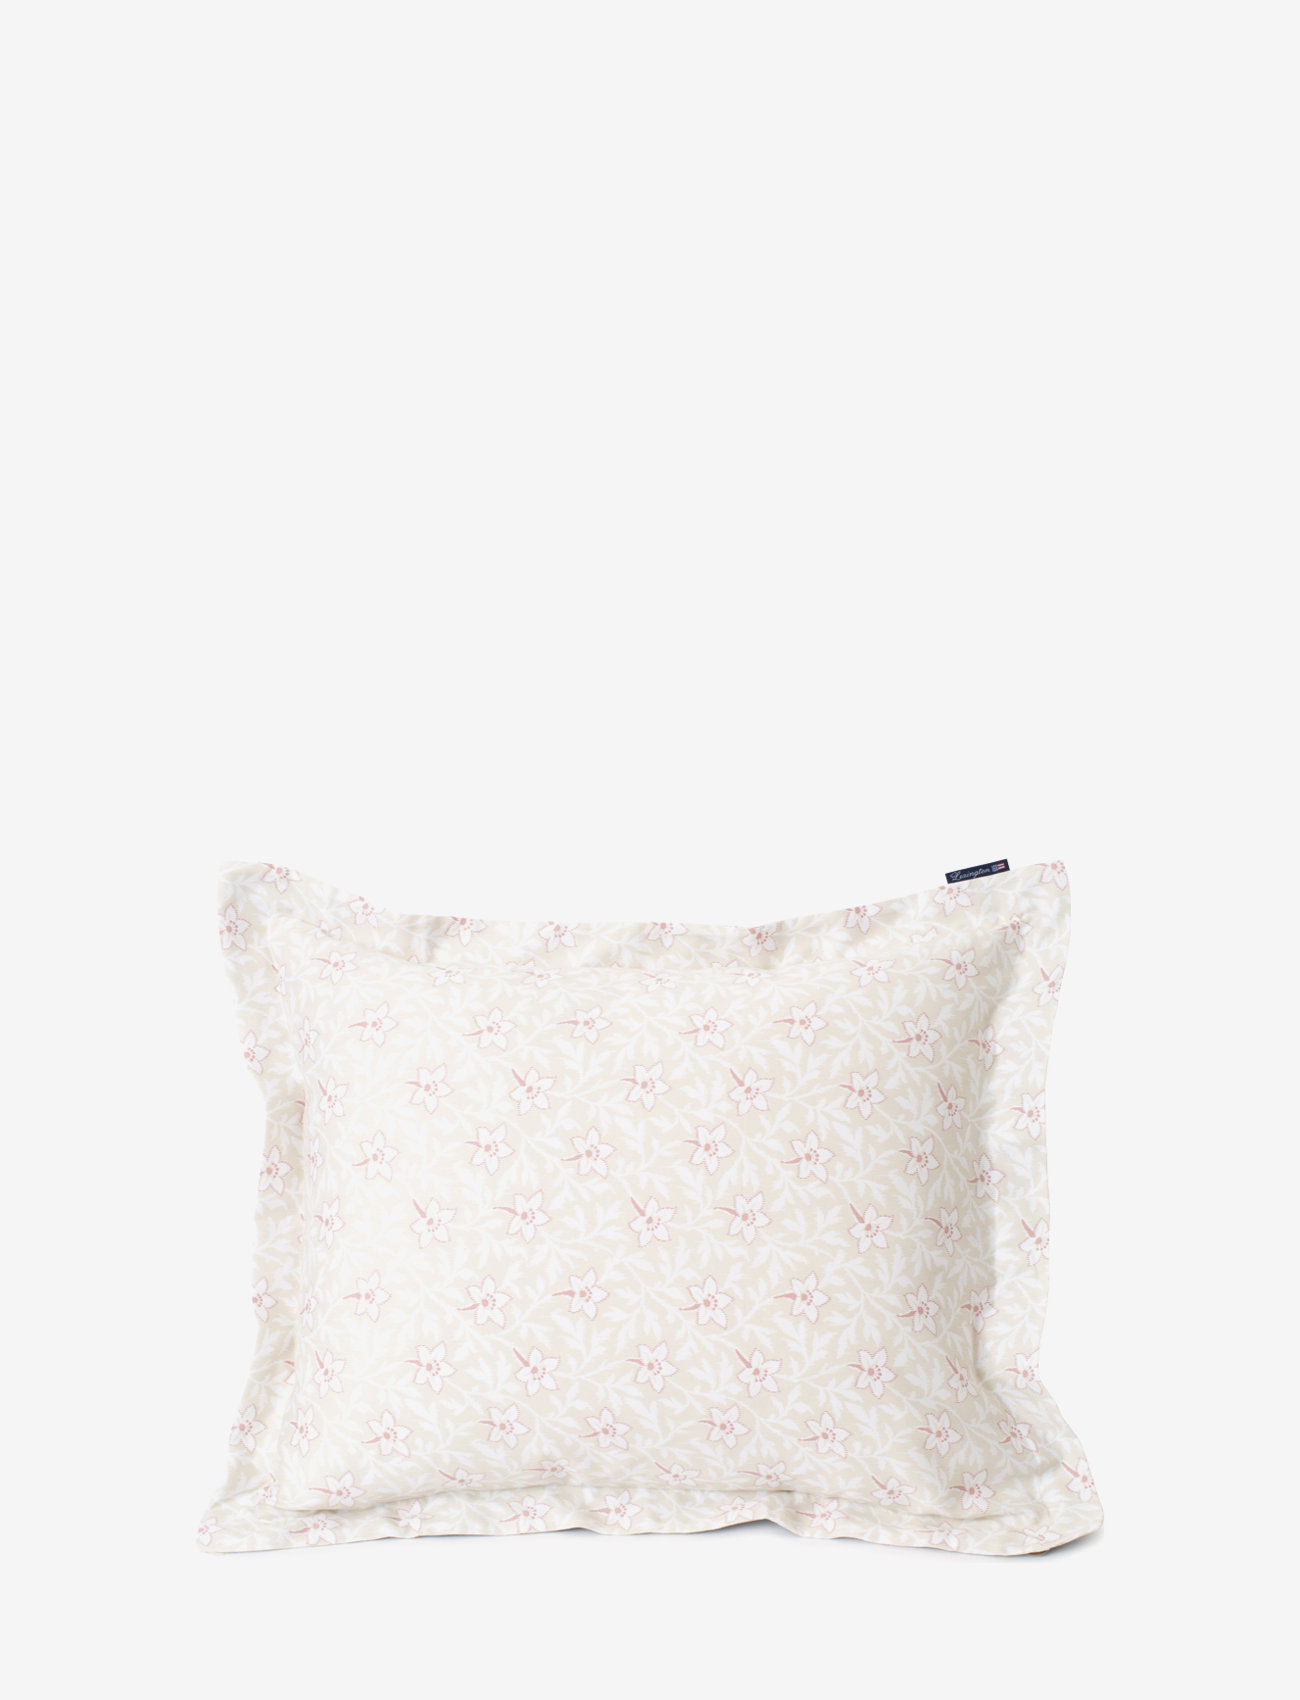 Lexington Home - LtBeige/Pink Flower Print Cotton Sateen Pillowcase - taie d'oreiller - lt beige/pink - 0